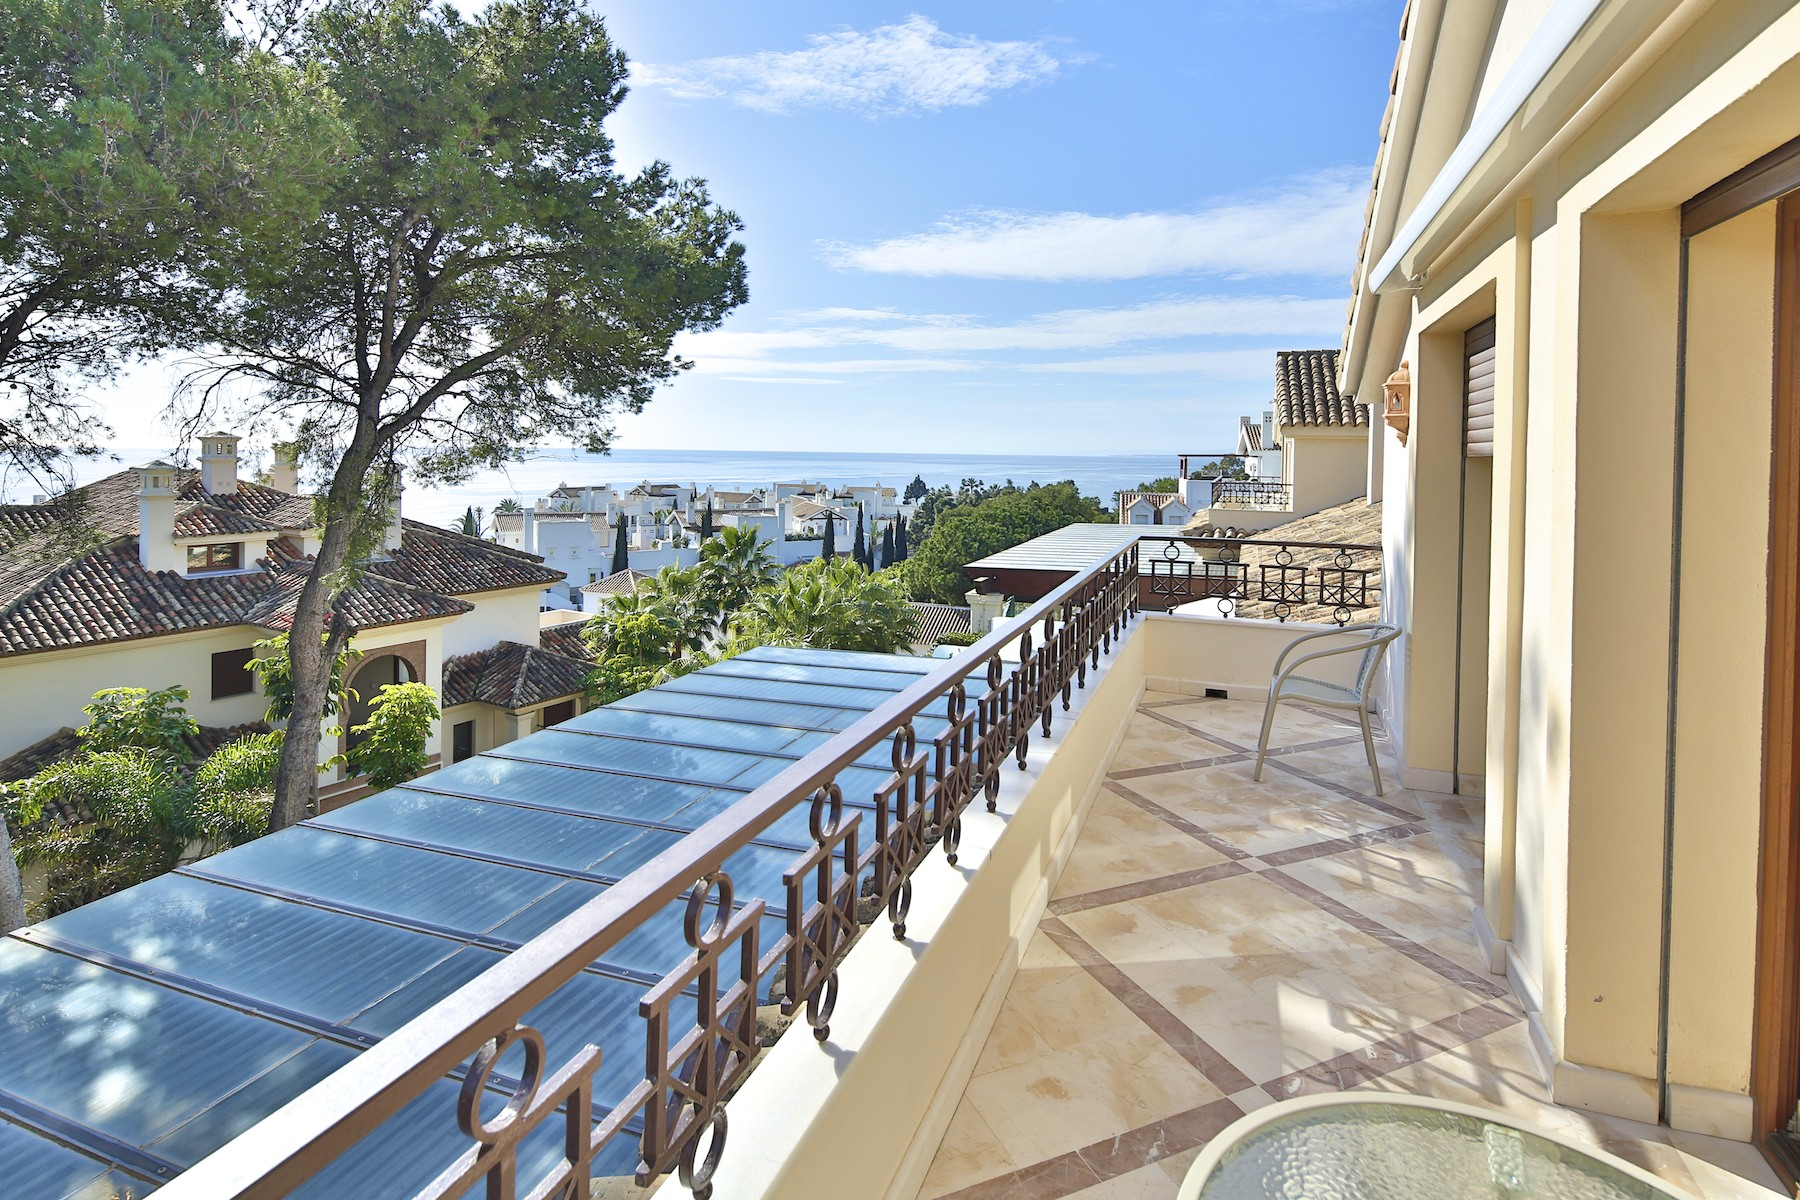 Duplex for Sale at Outstanding luxury duplex penthouse Los Monteros Marbella, Costa Del Sol, 29600 Spain